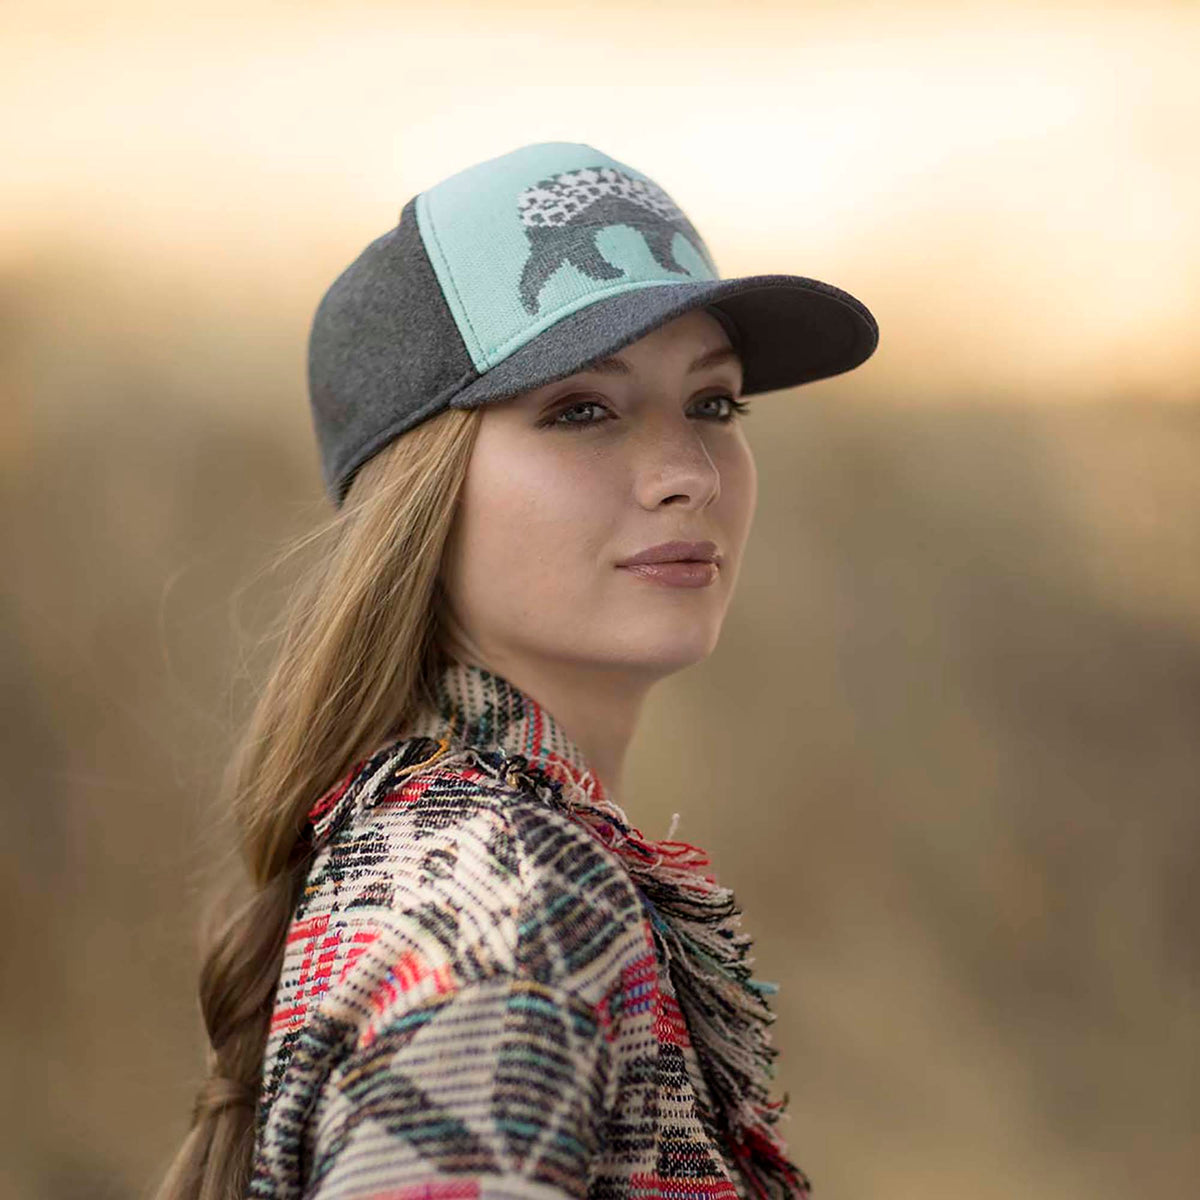 Lady wearing Pistil Ursa Cap with jacquard knit bear graphic front panel in aqua